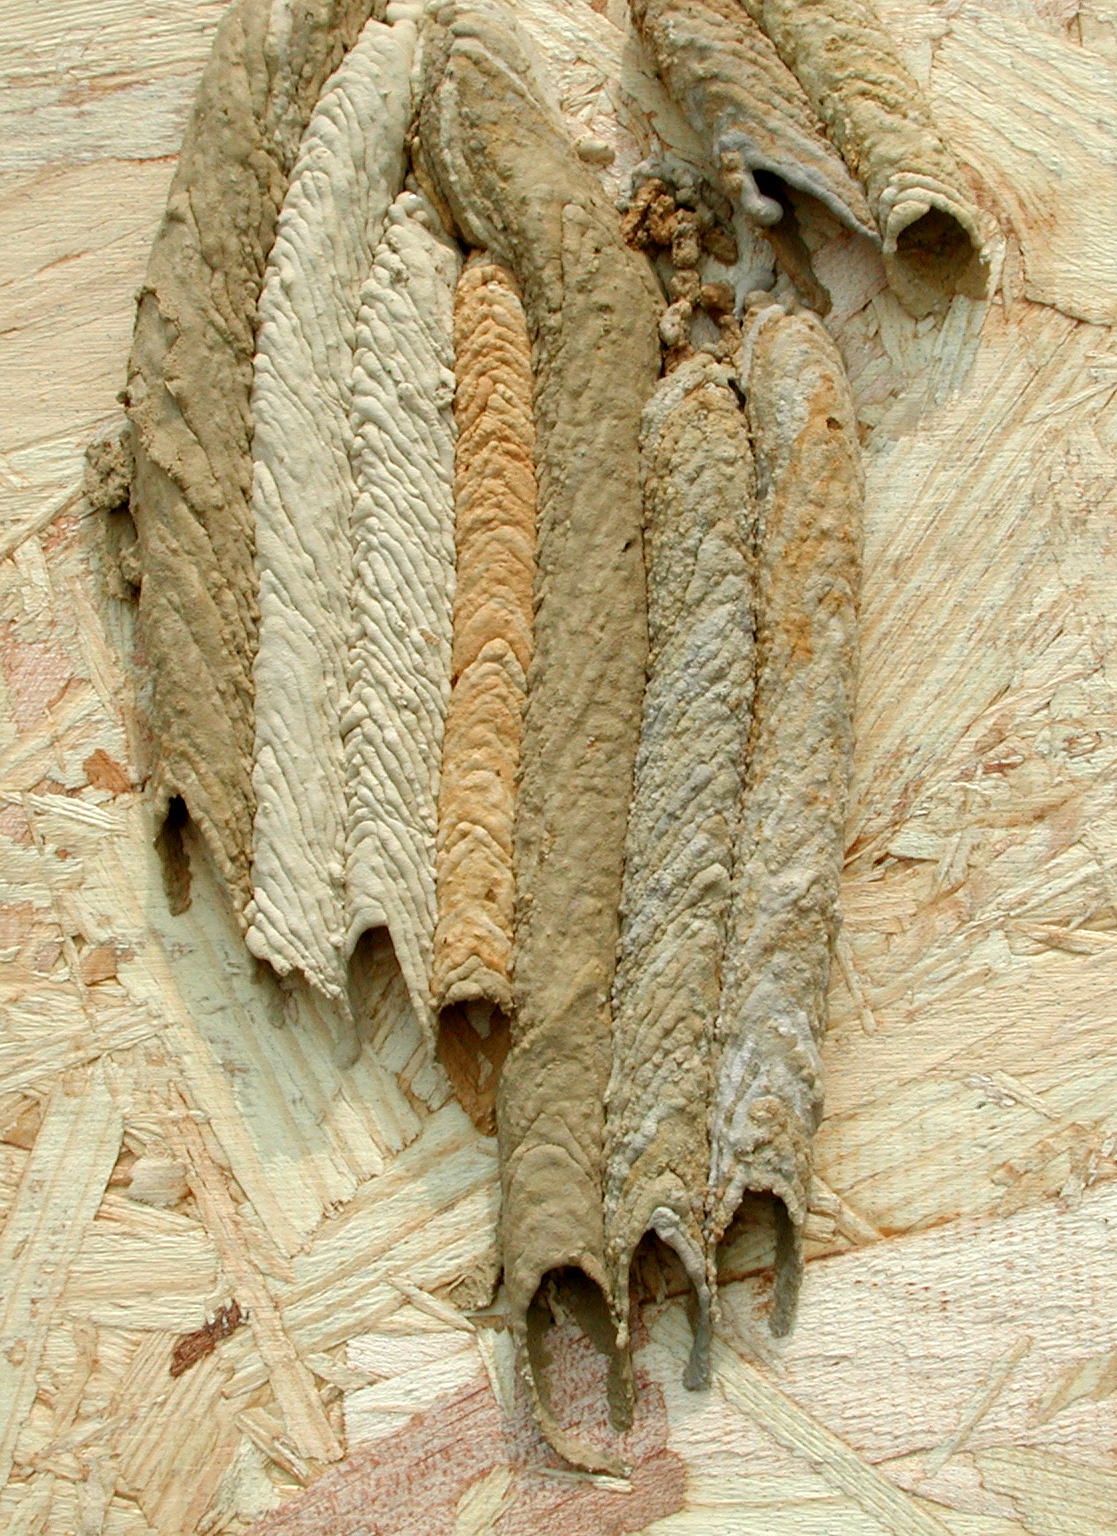 File:Organ Pipe Wasp nest.jpg - Wikipedia